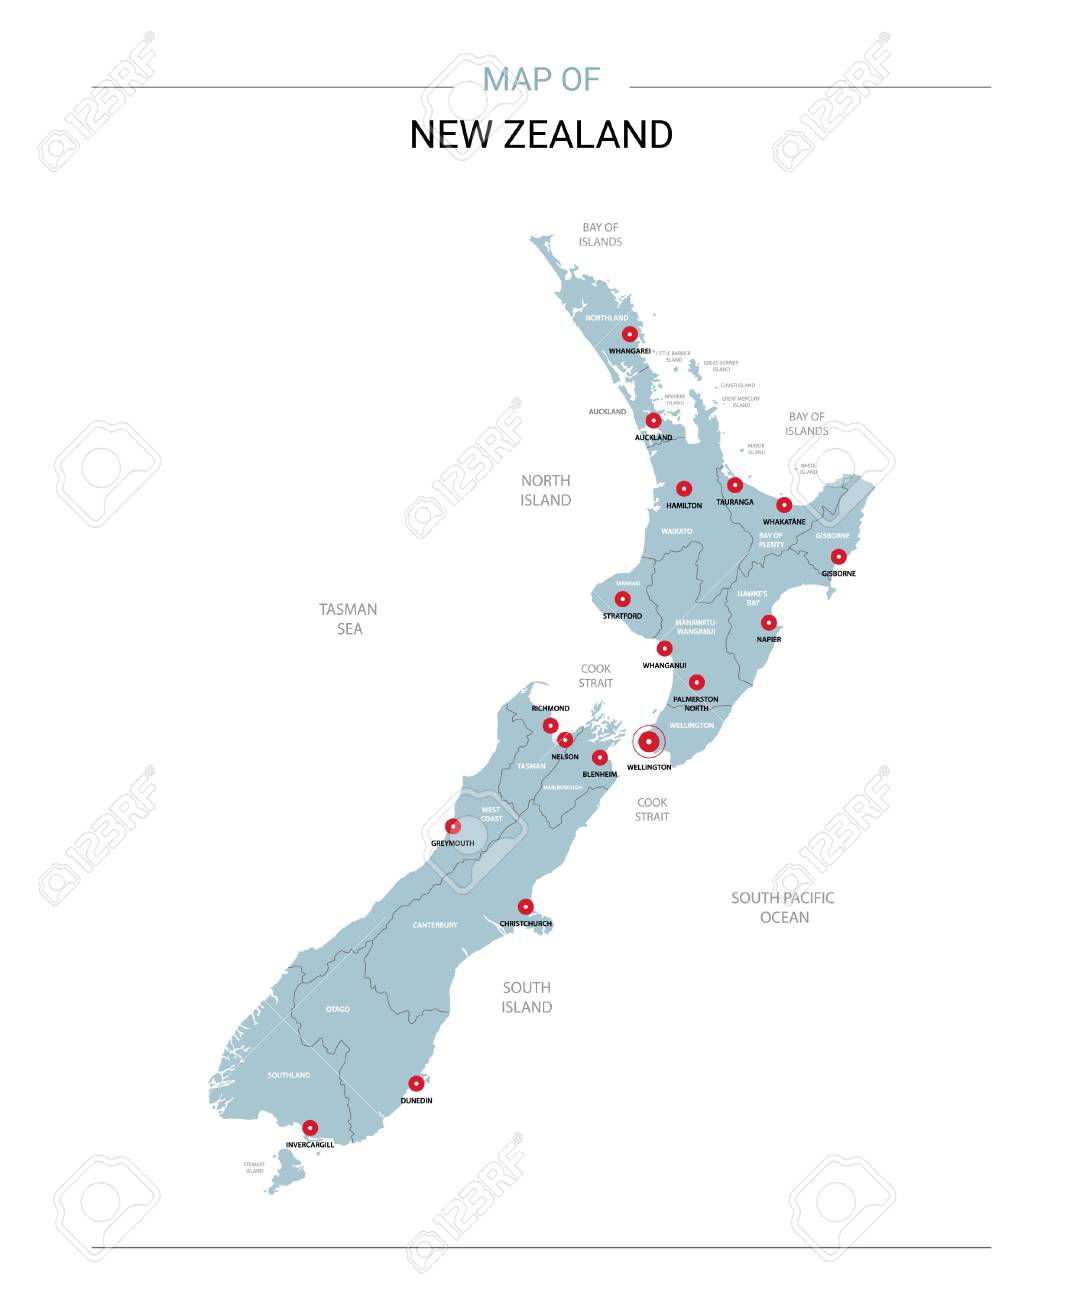 Map Of New Zealand With Cities.New Zealand Vector Map Editable Template With Regions Cities